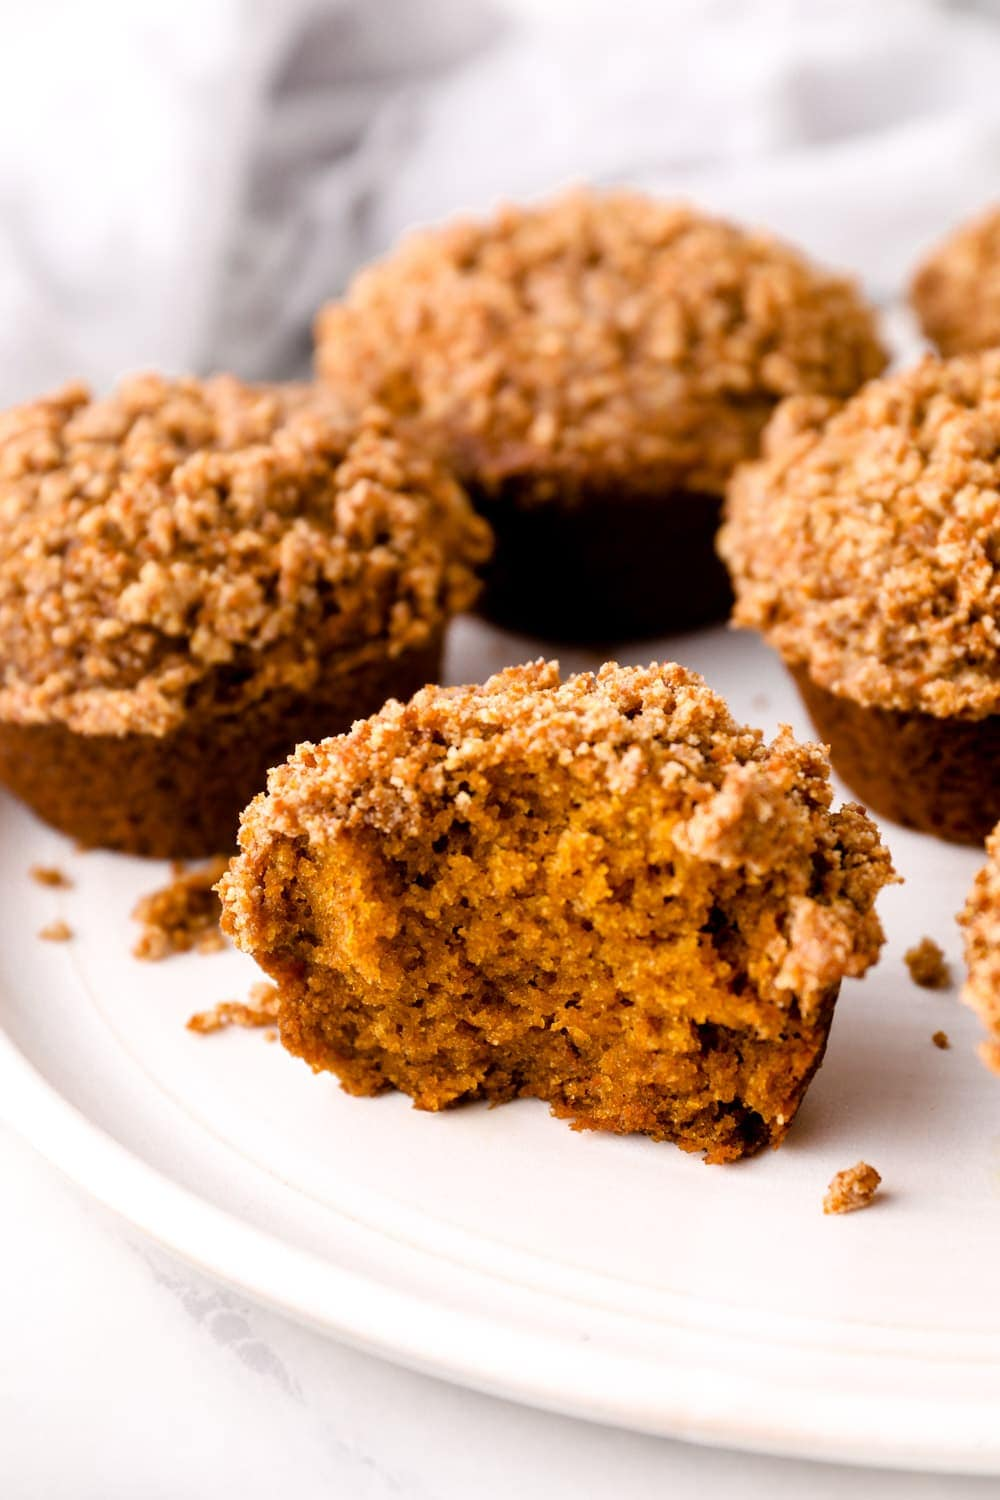 A Gluten Free Pumpkin Muffin cut in half and topped with crumble.